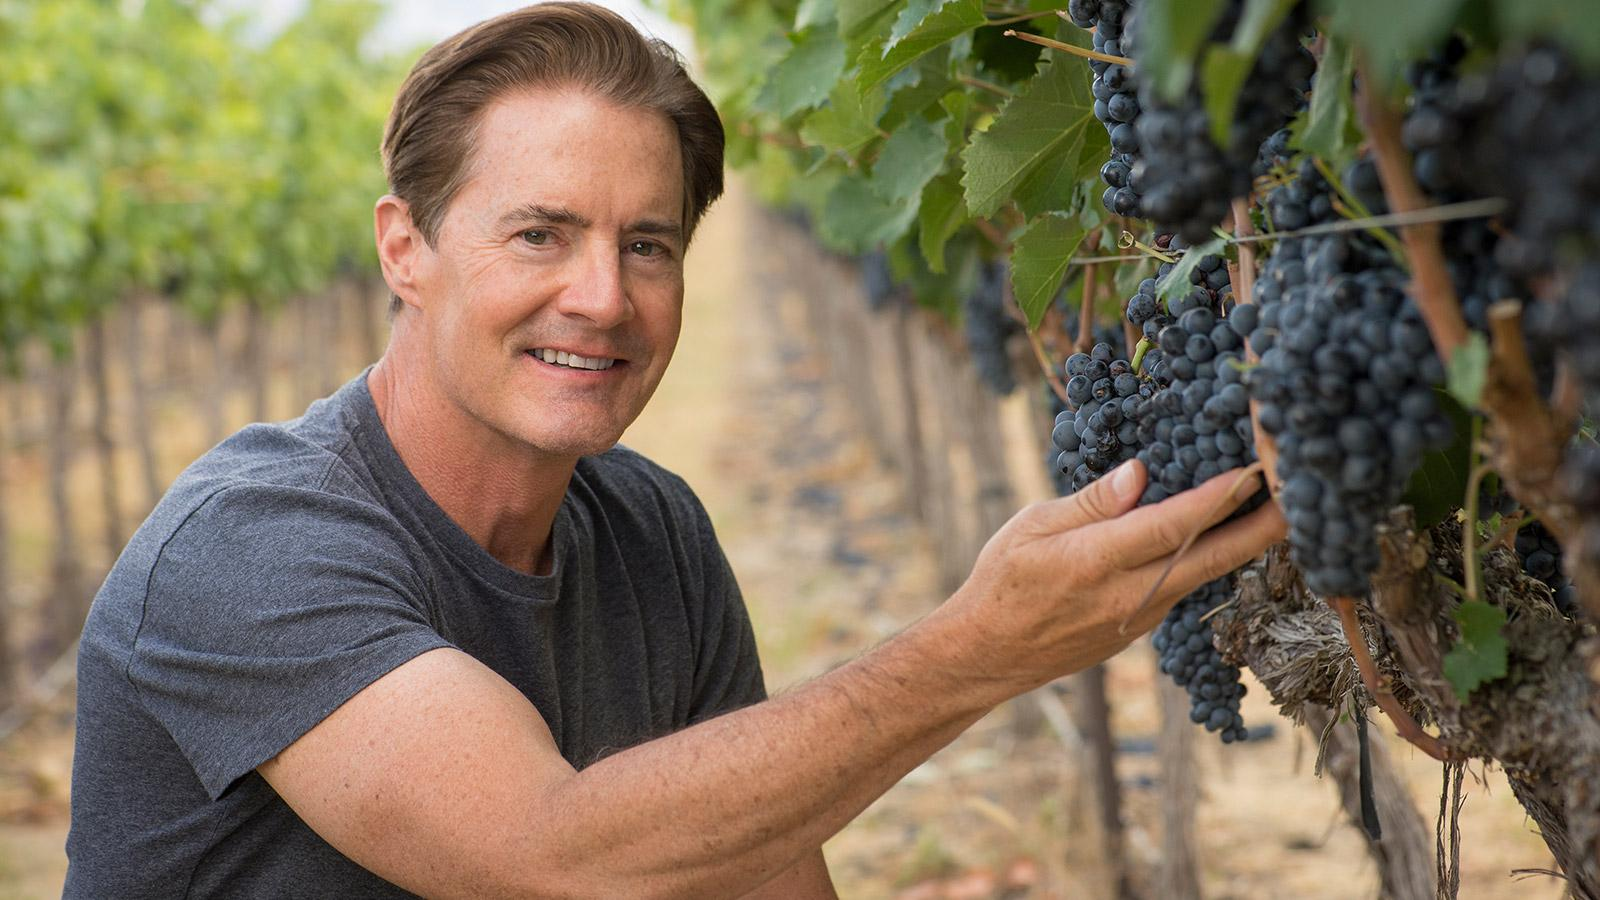 Unfiltered Blushing Actor Vintner Kyle Maclachlan